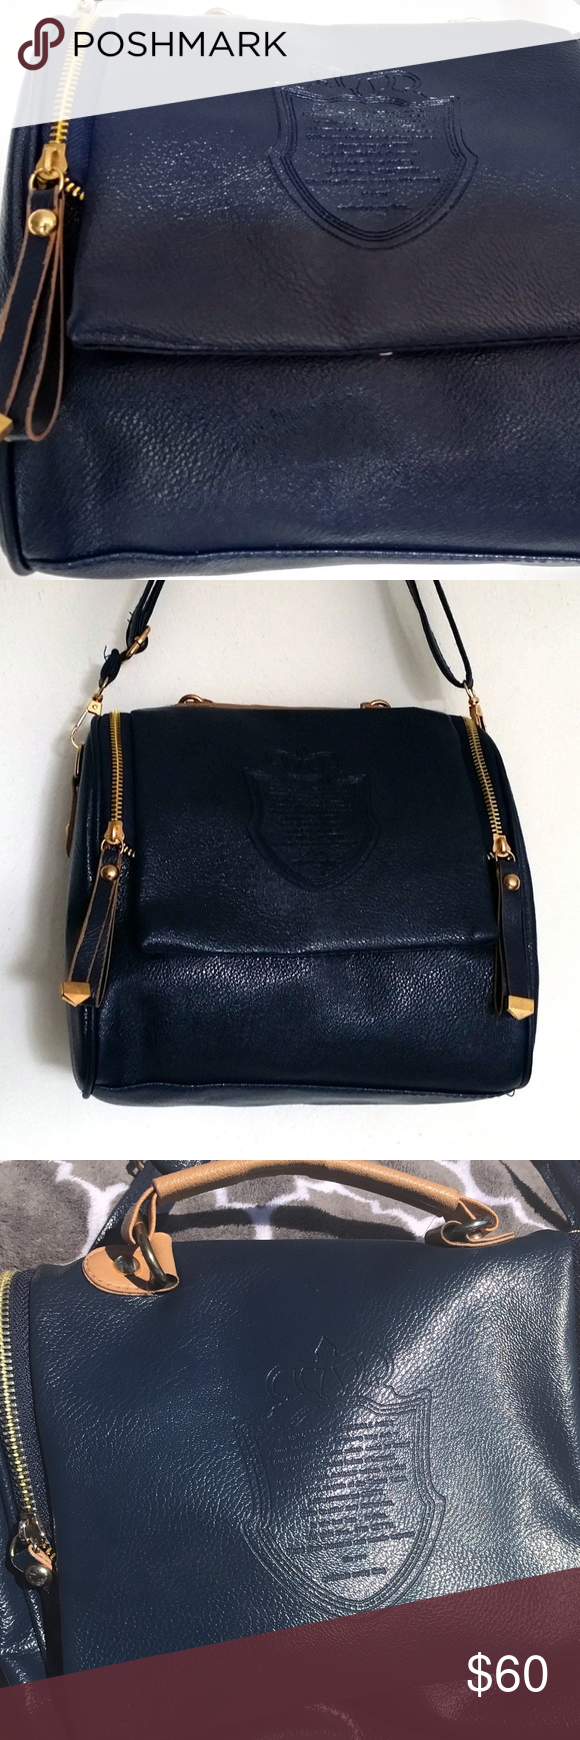 Cettu Leather Bag Made In Italy 3 Ways To Carry Navy Blue Pebbled